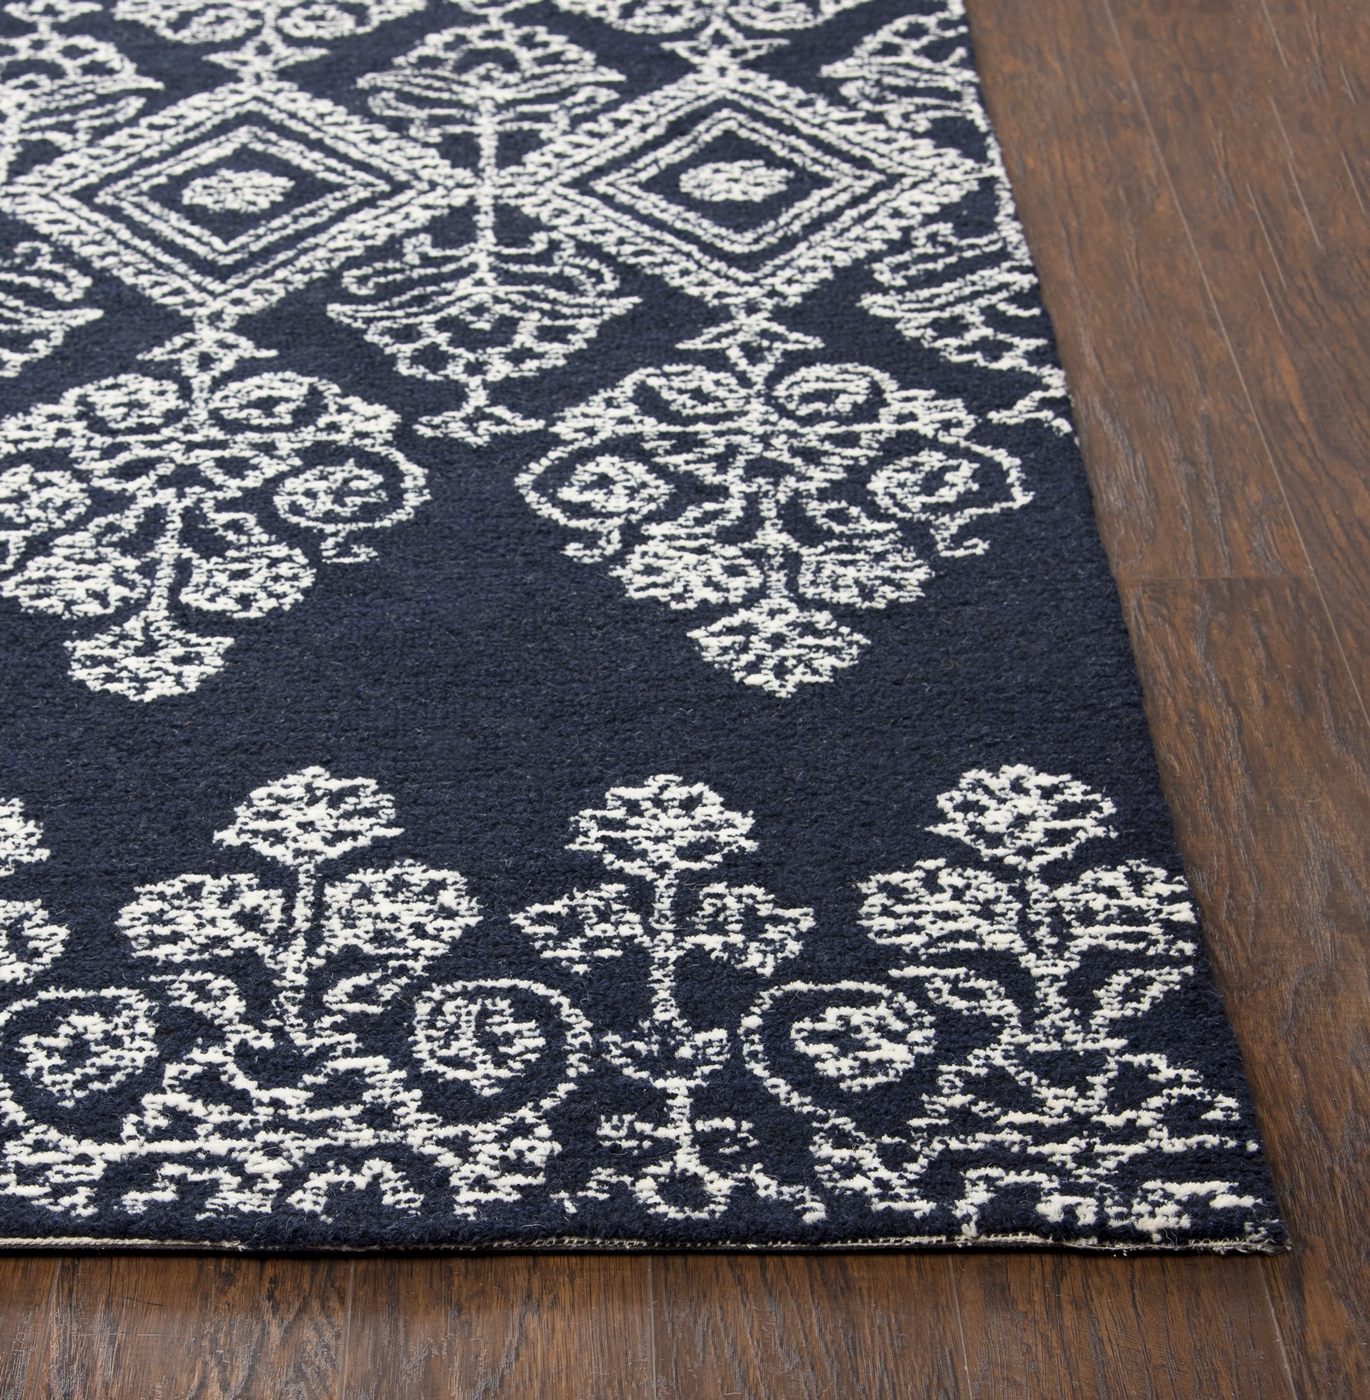 Woolrich Blue And White Floral Rug: Legacy Intricate Floral Diamond Wool Area Rug In Blue